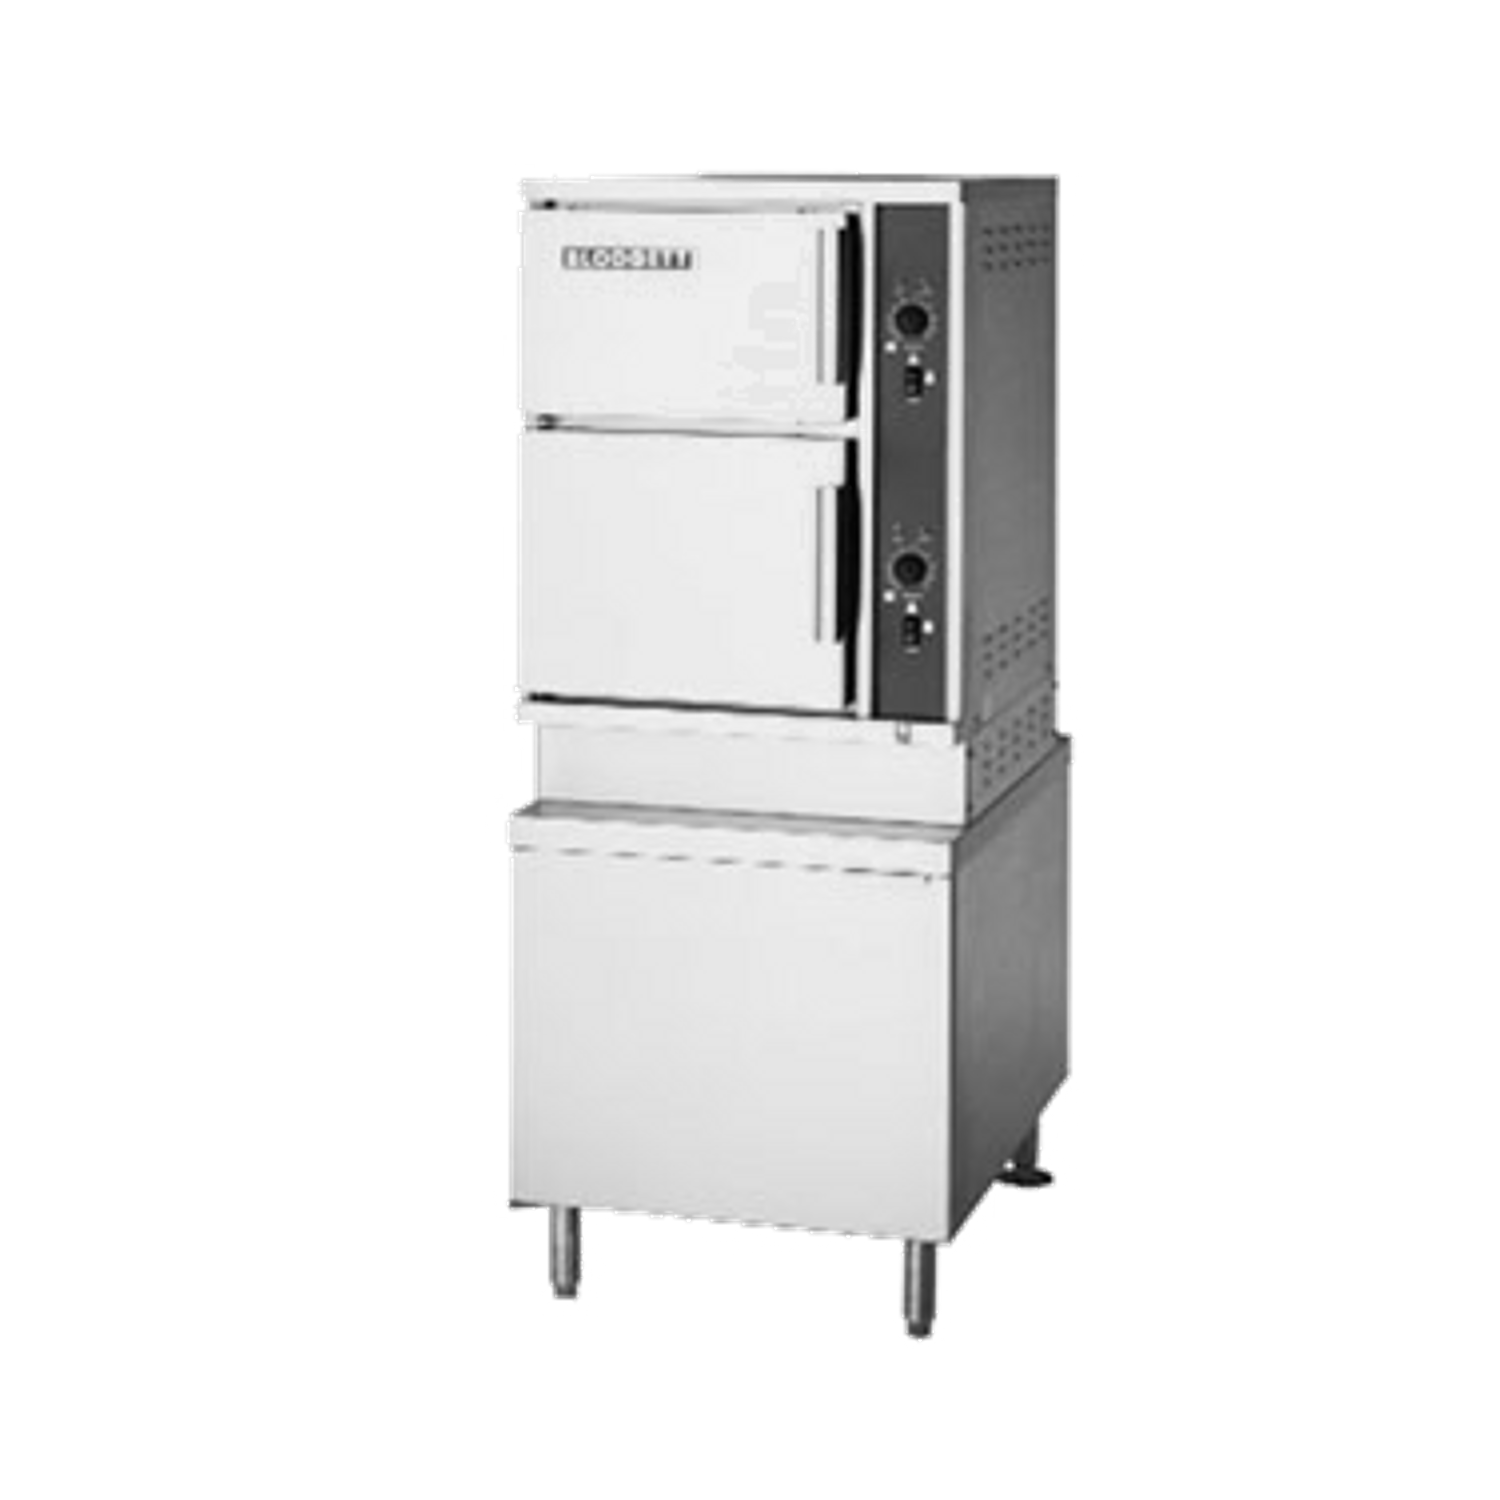 """Blodgett SC-10E Convection Steamer, Electric, (2) compartment, (5) 12"""" x  20"""" x 2-1/2"""" pan capacity each, individual manual compartment controls with"""